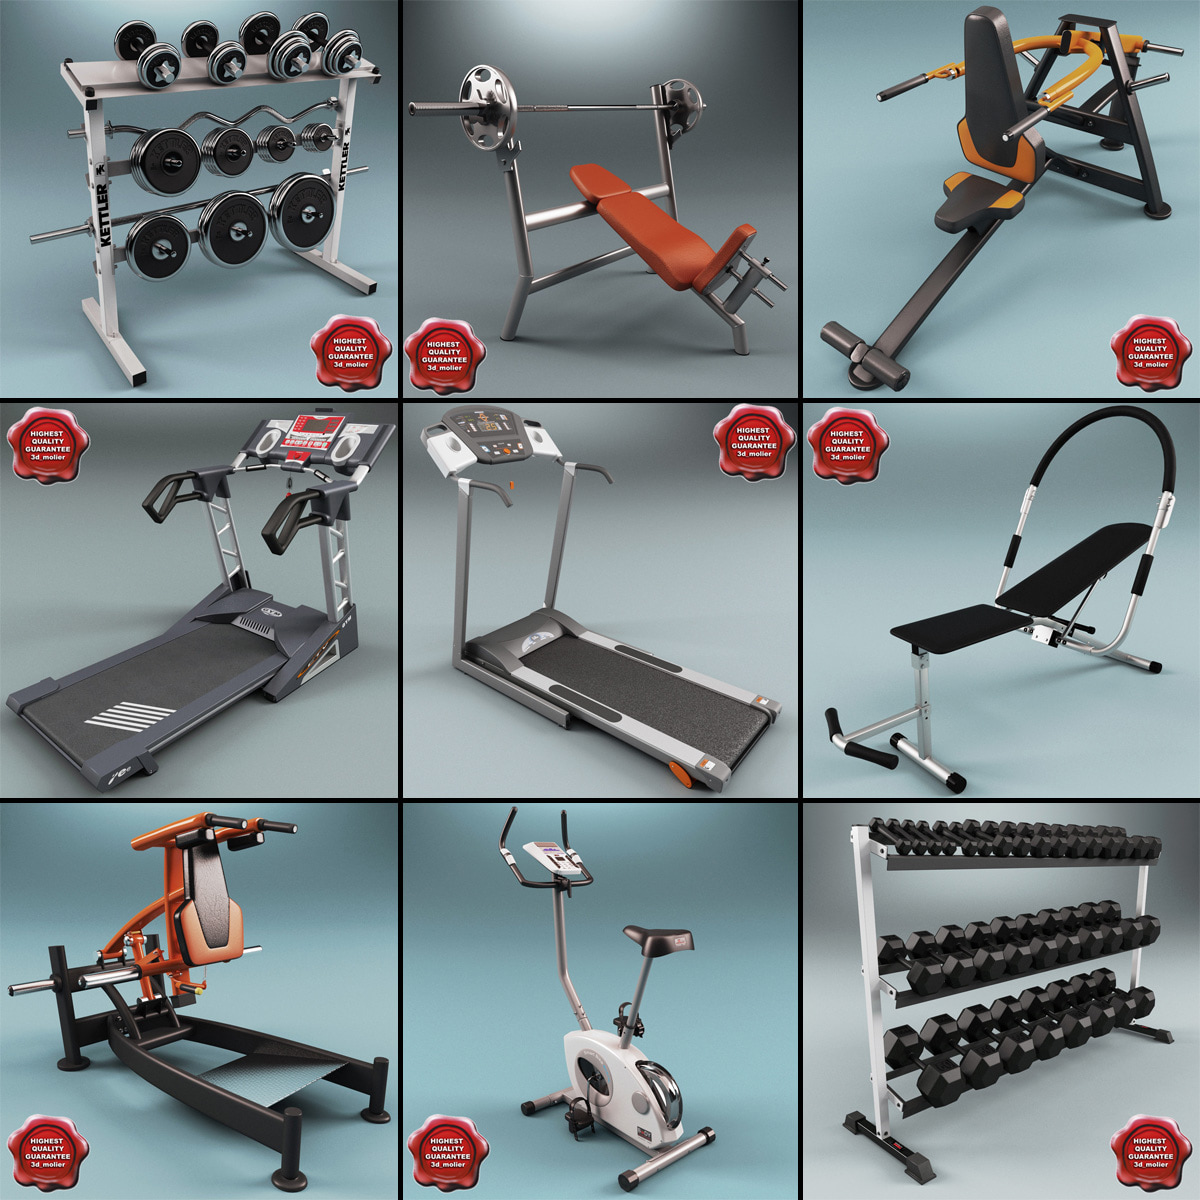 Gym_Equipment_Collection_V4_000.jpg